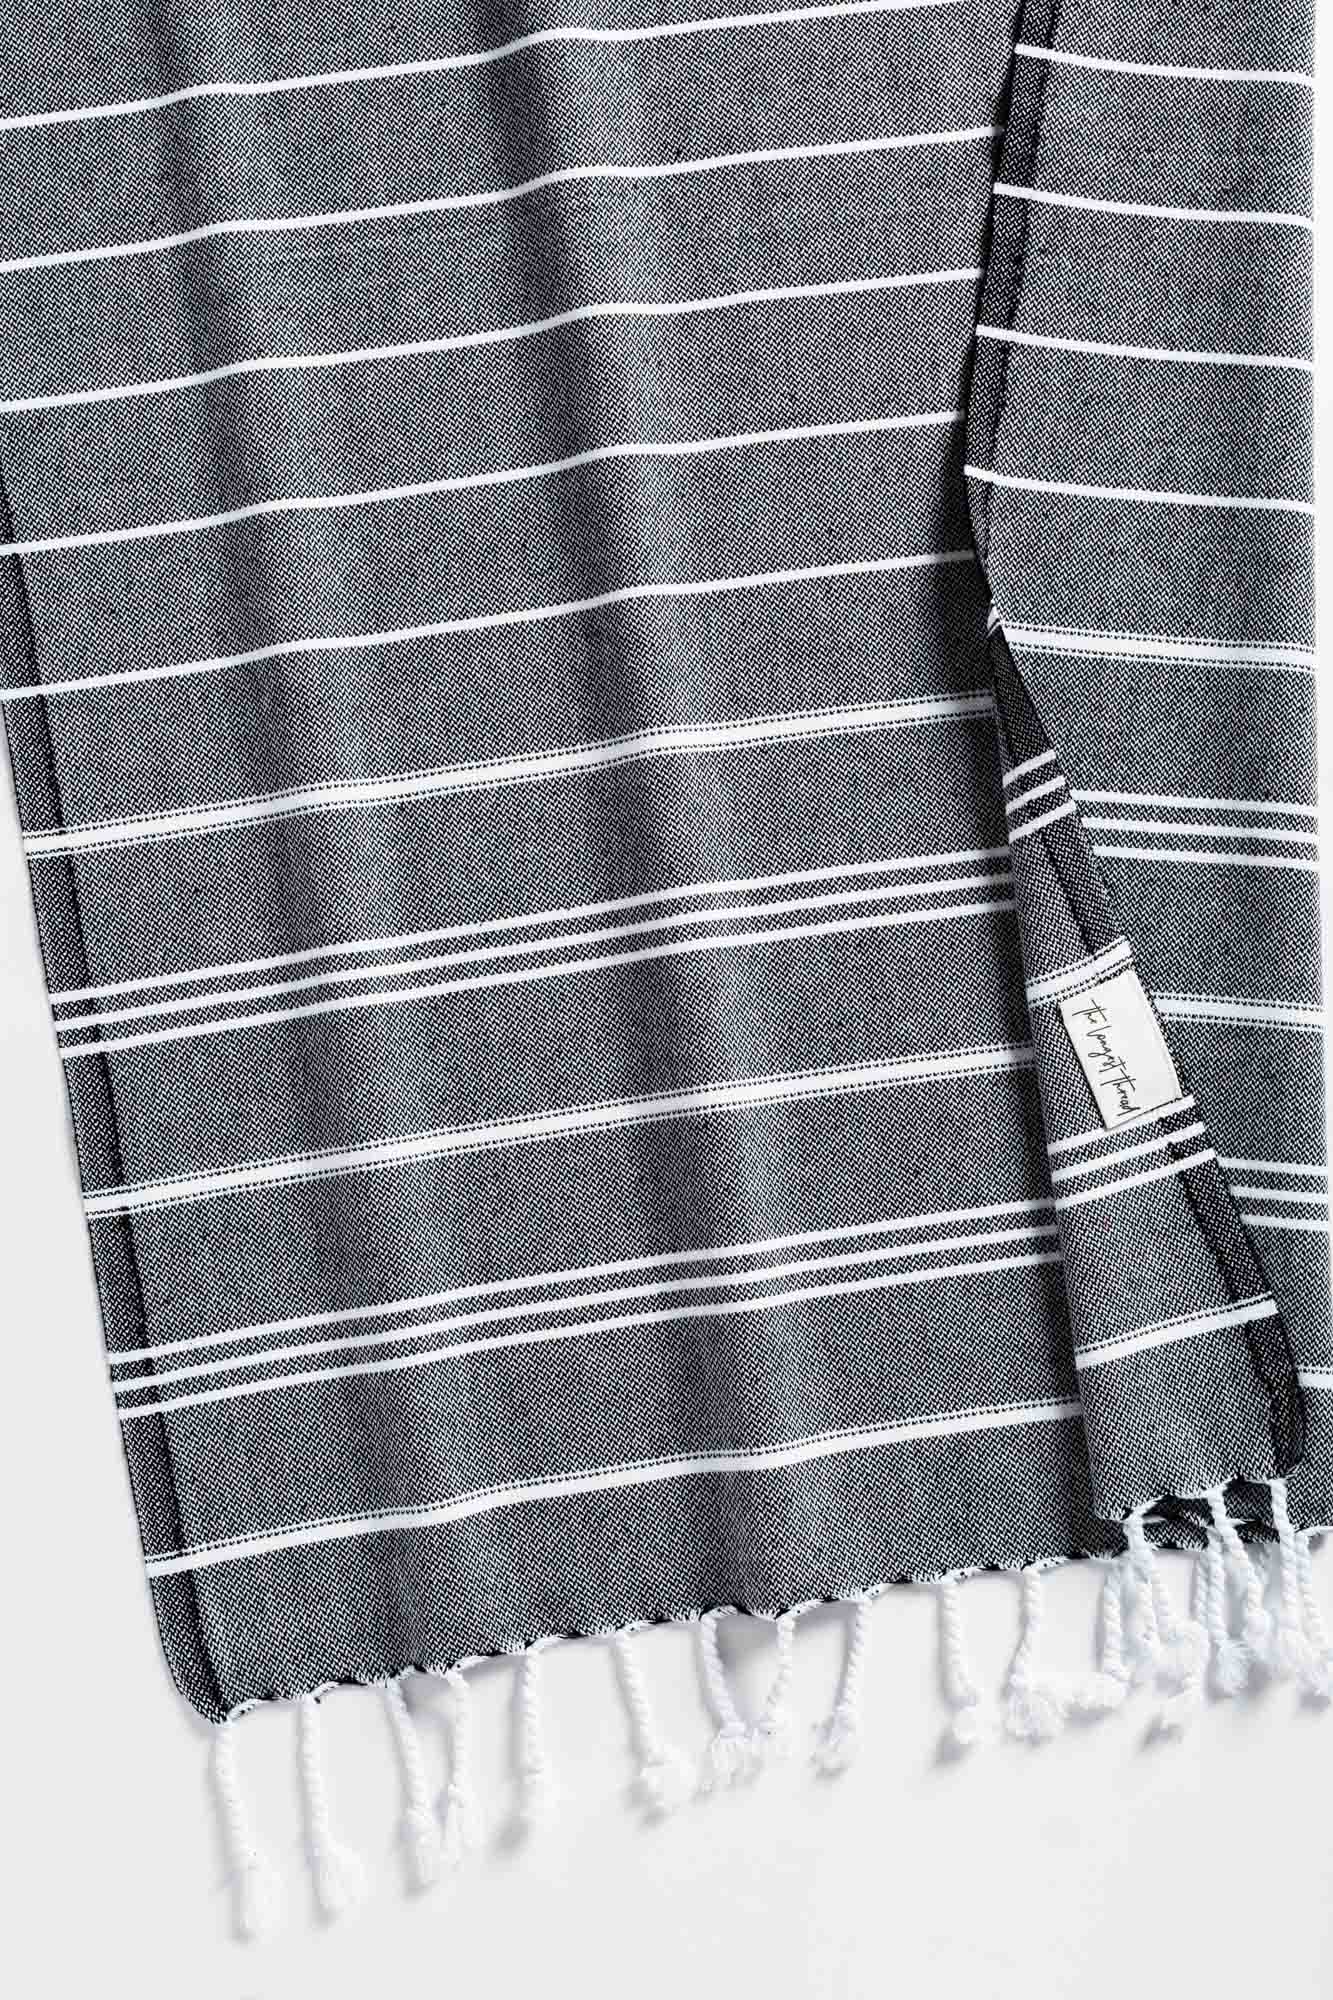 Basic Black Turkish Hand Towel Image 1